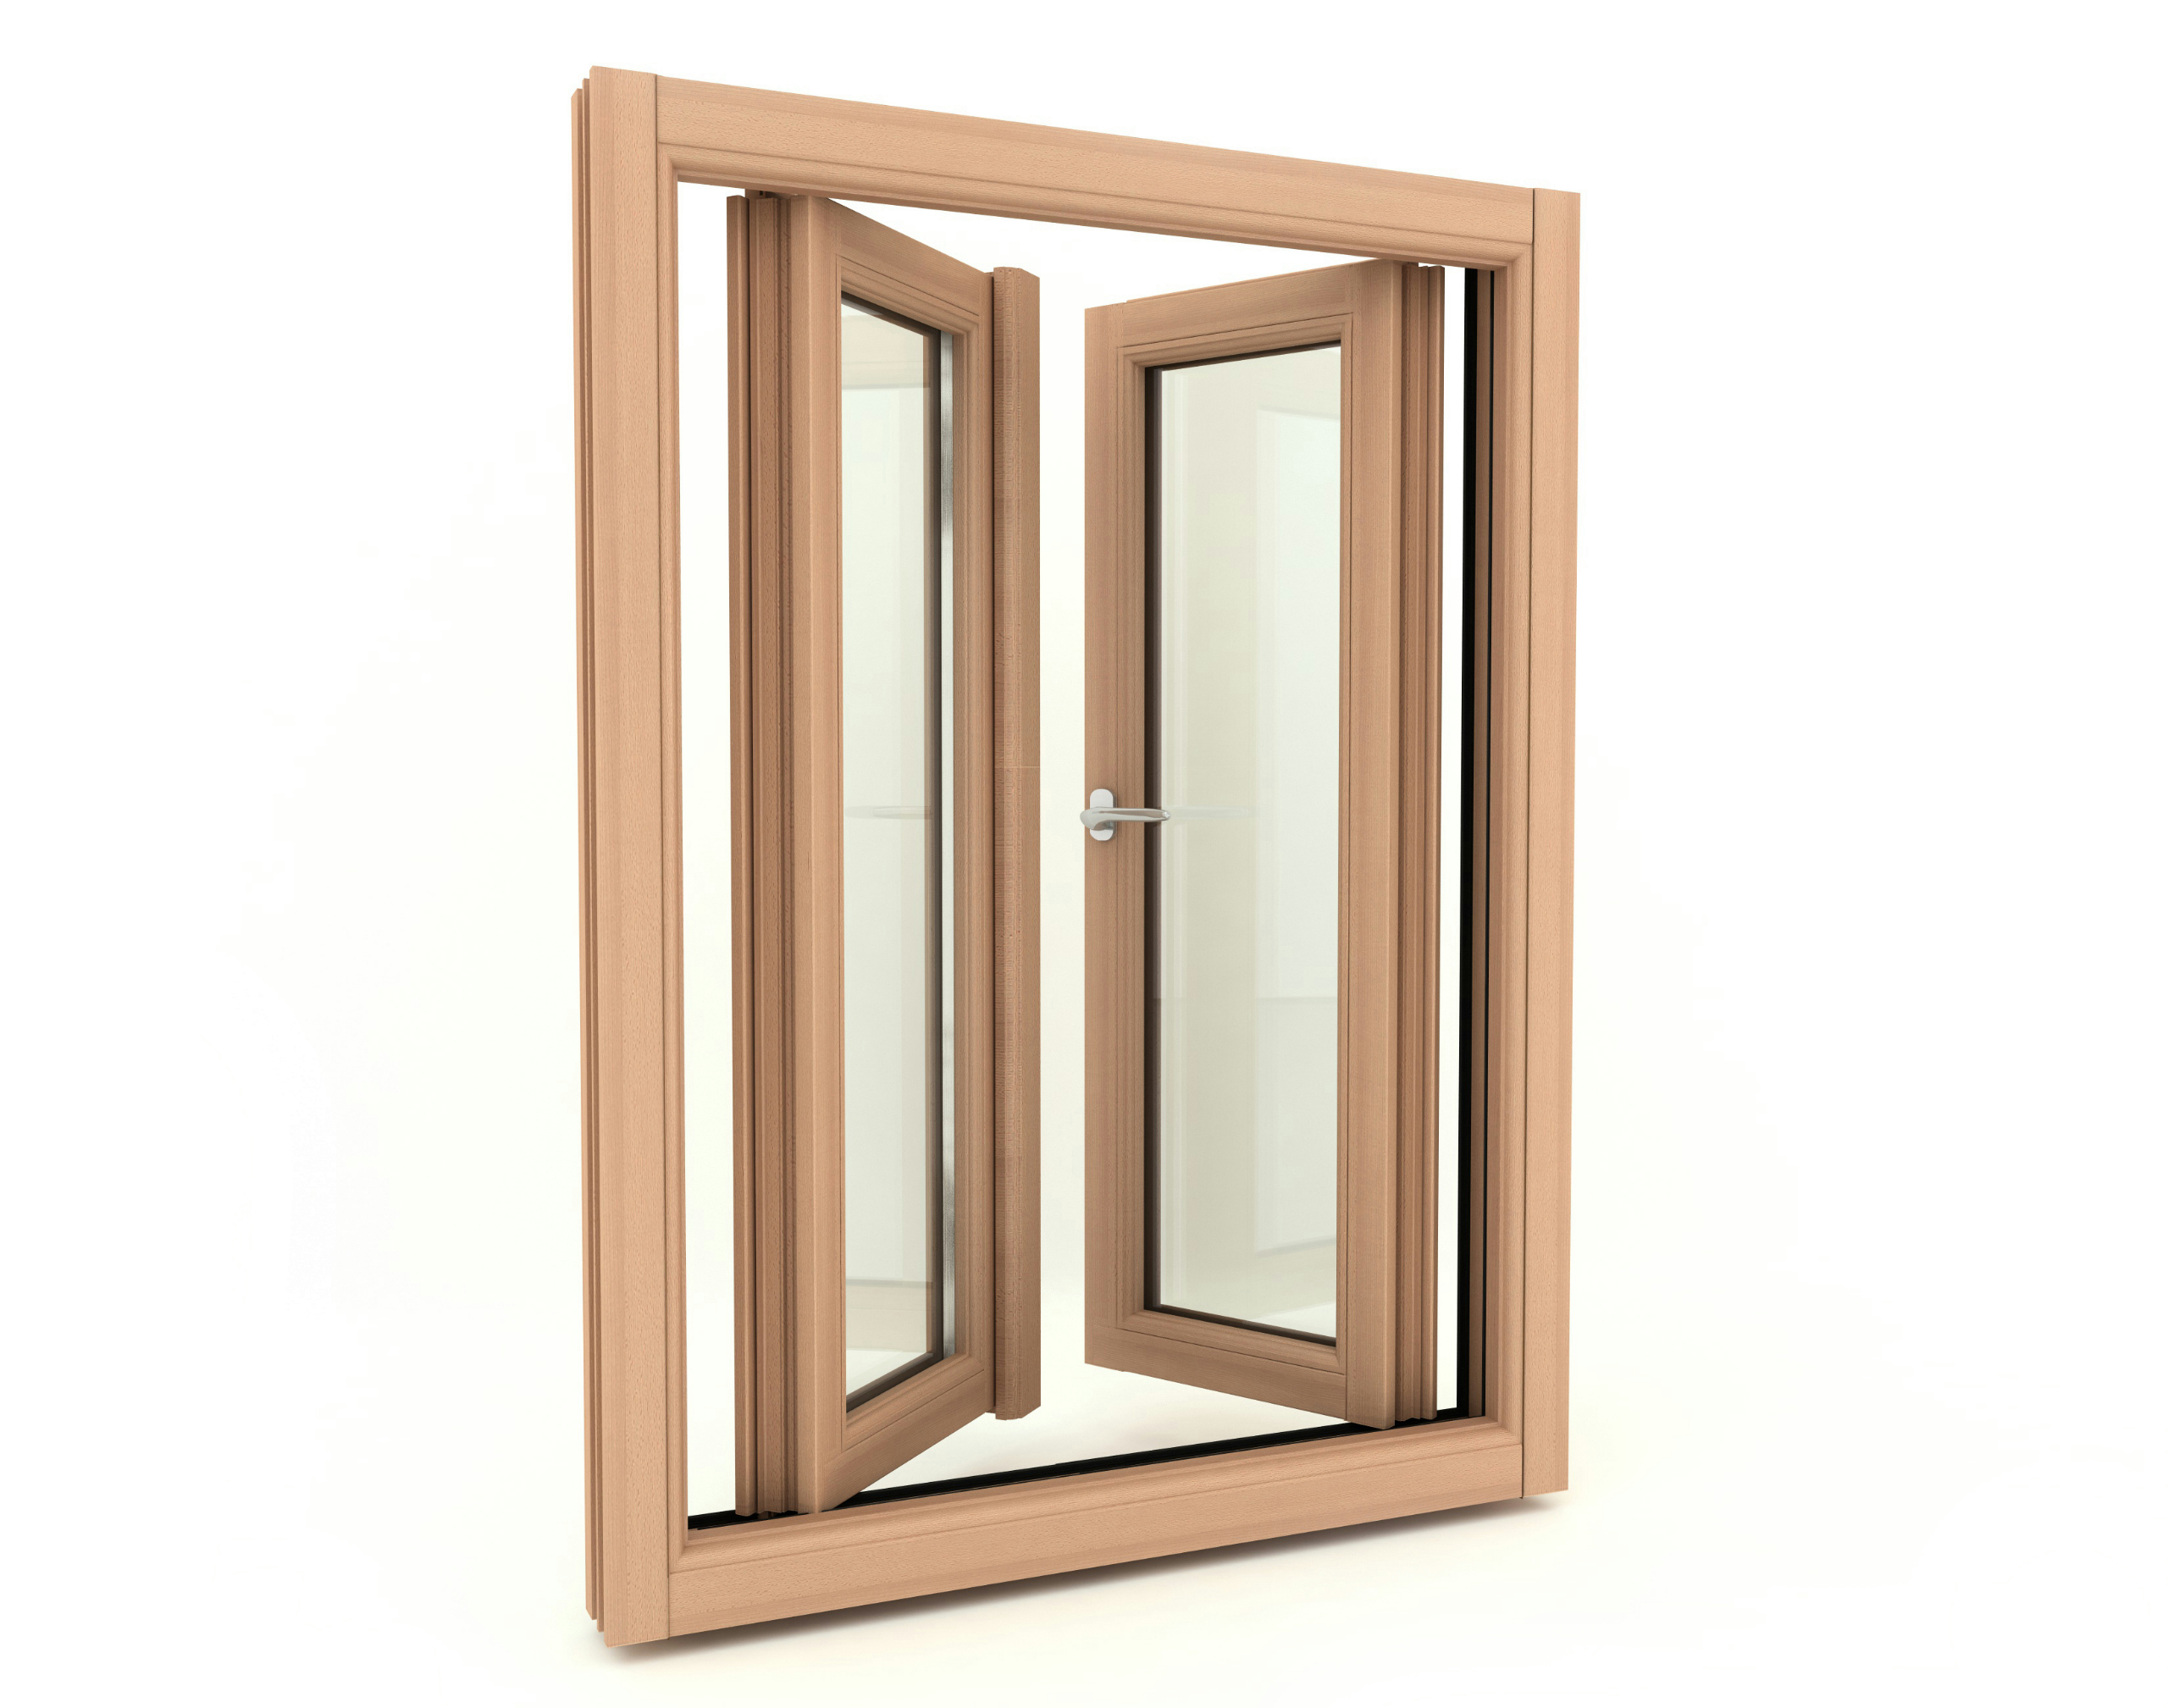 Europa horizontally pivoted window by pavanello for Wooden windows